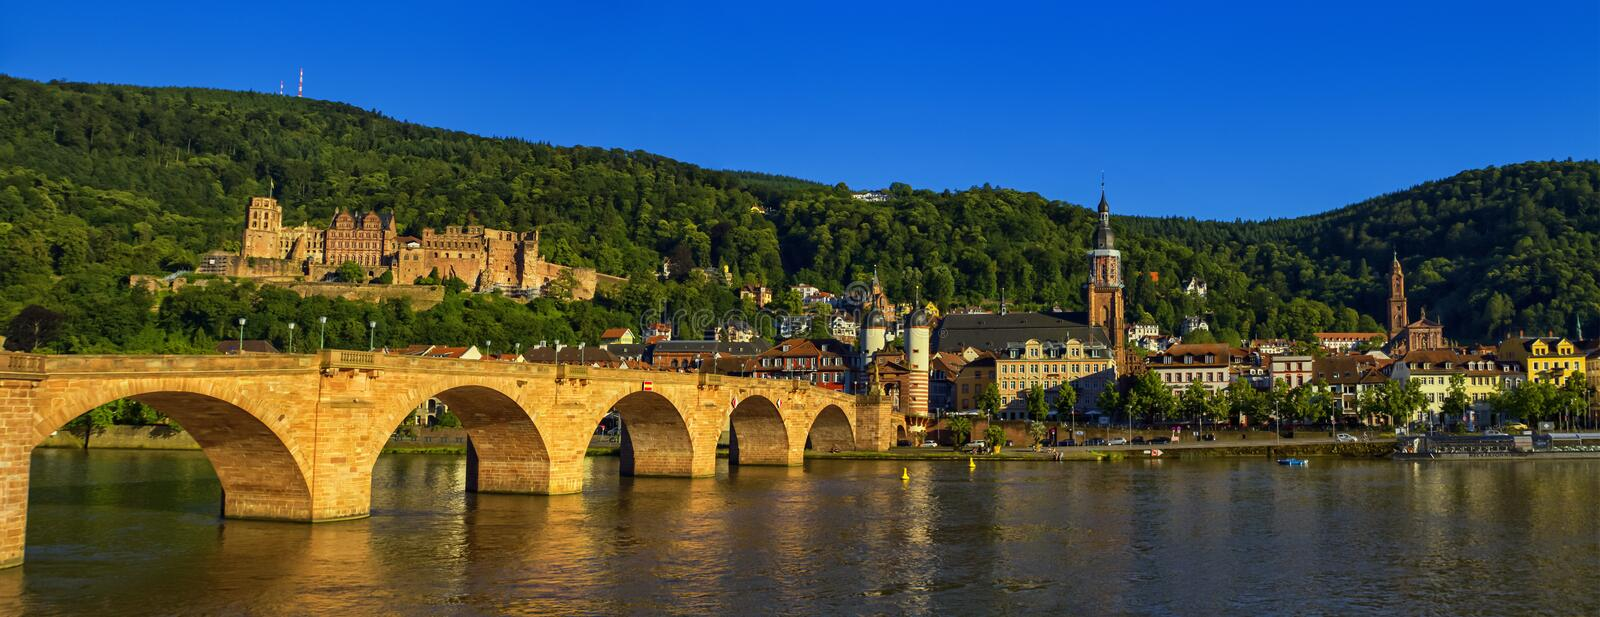 Karl Theodor or old bridge and castle, Heidelberg, Germany. Karl Theodor or old bridge, Alte Brucke, Neckar river and castle by day, Heidelberg, Germany royalty free stock photography